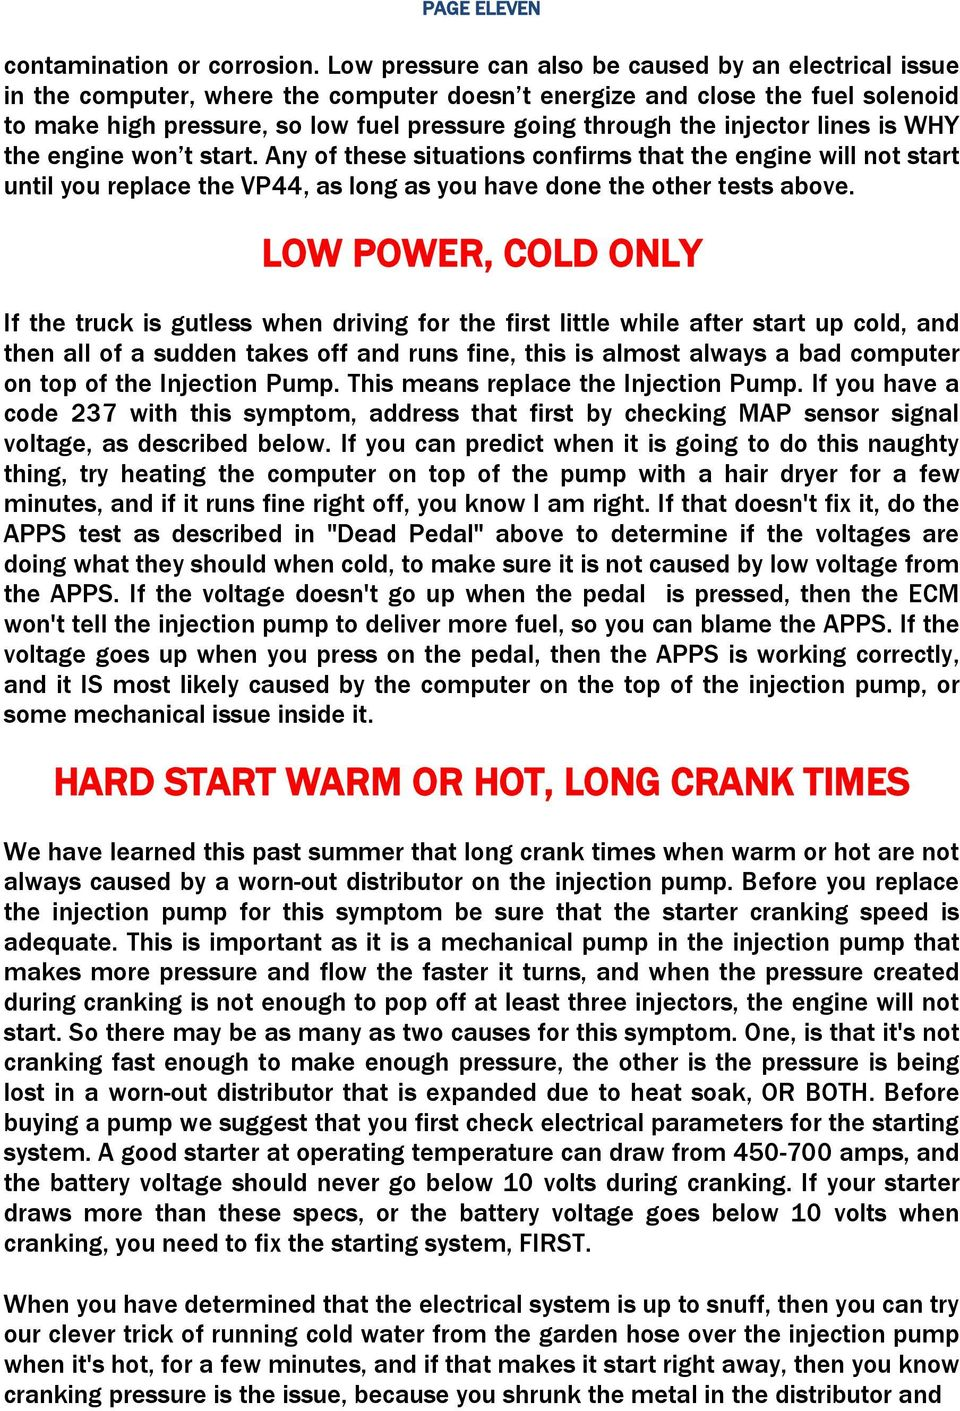 Vp44 Wiring Diagram Library Pump Injector Lines Is Why The Engine Won T Start Any Of These Situations Confirms That